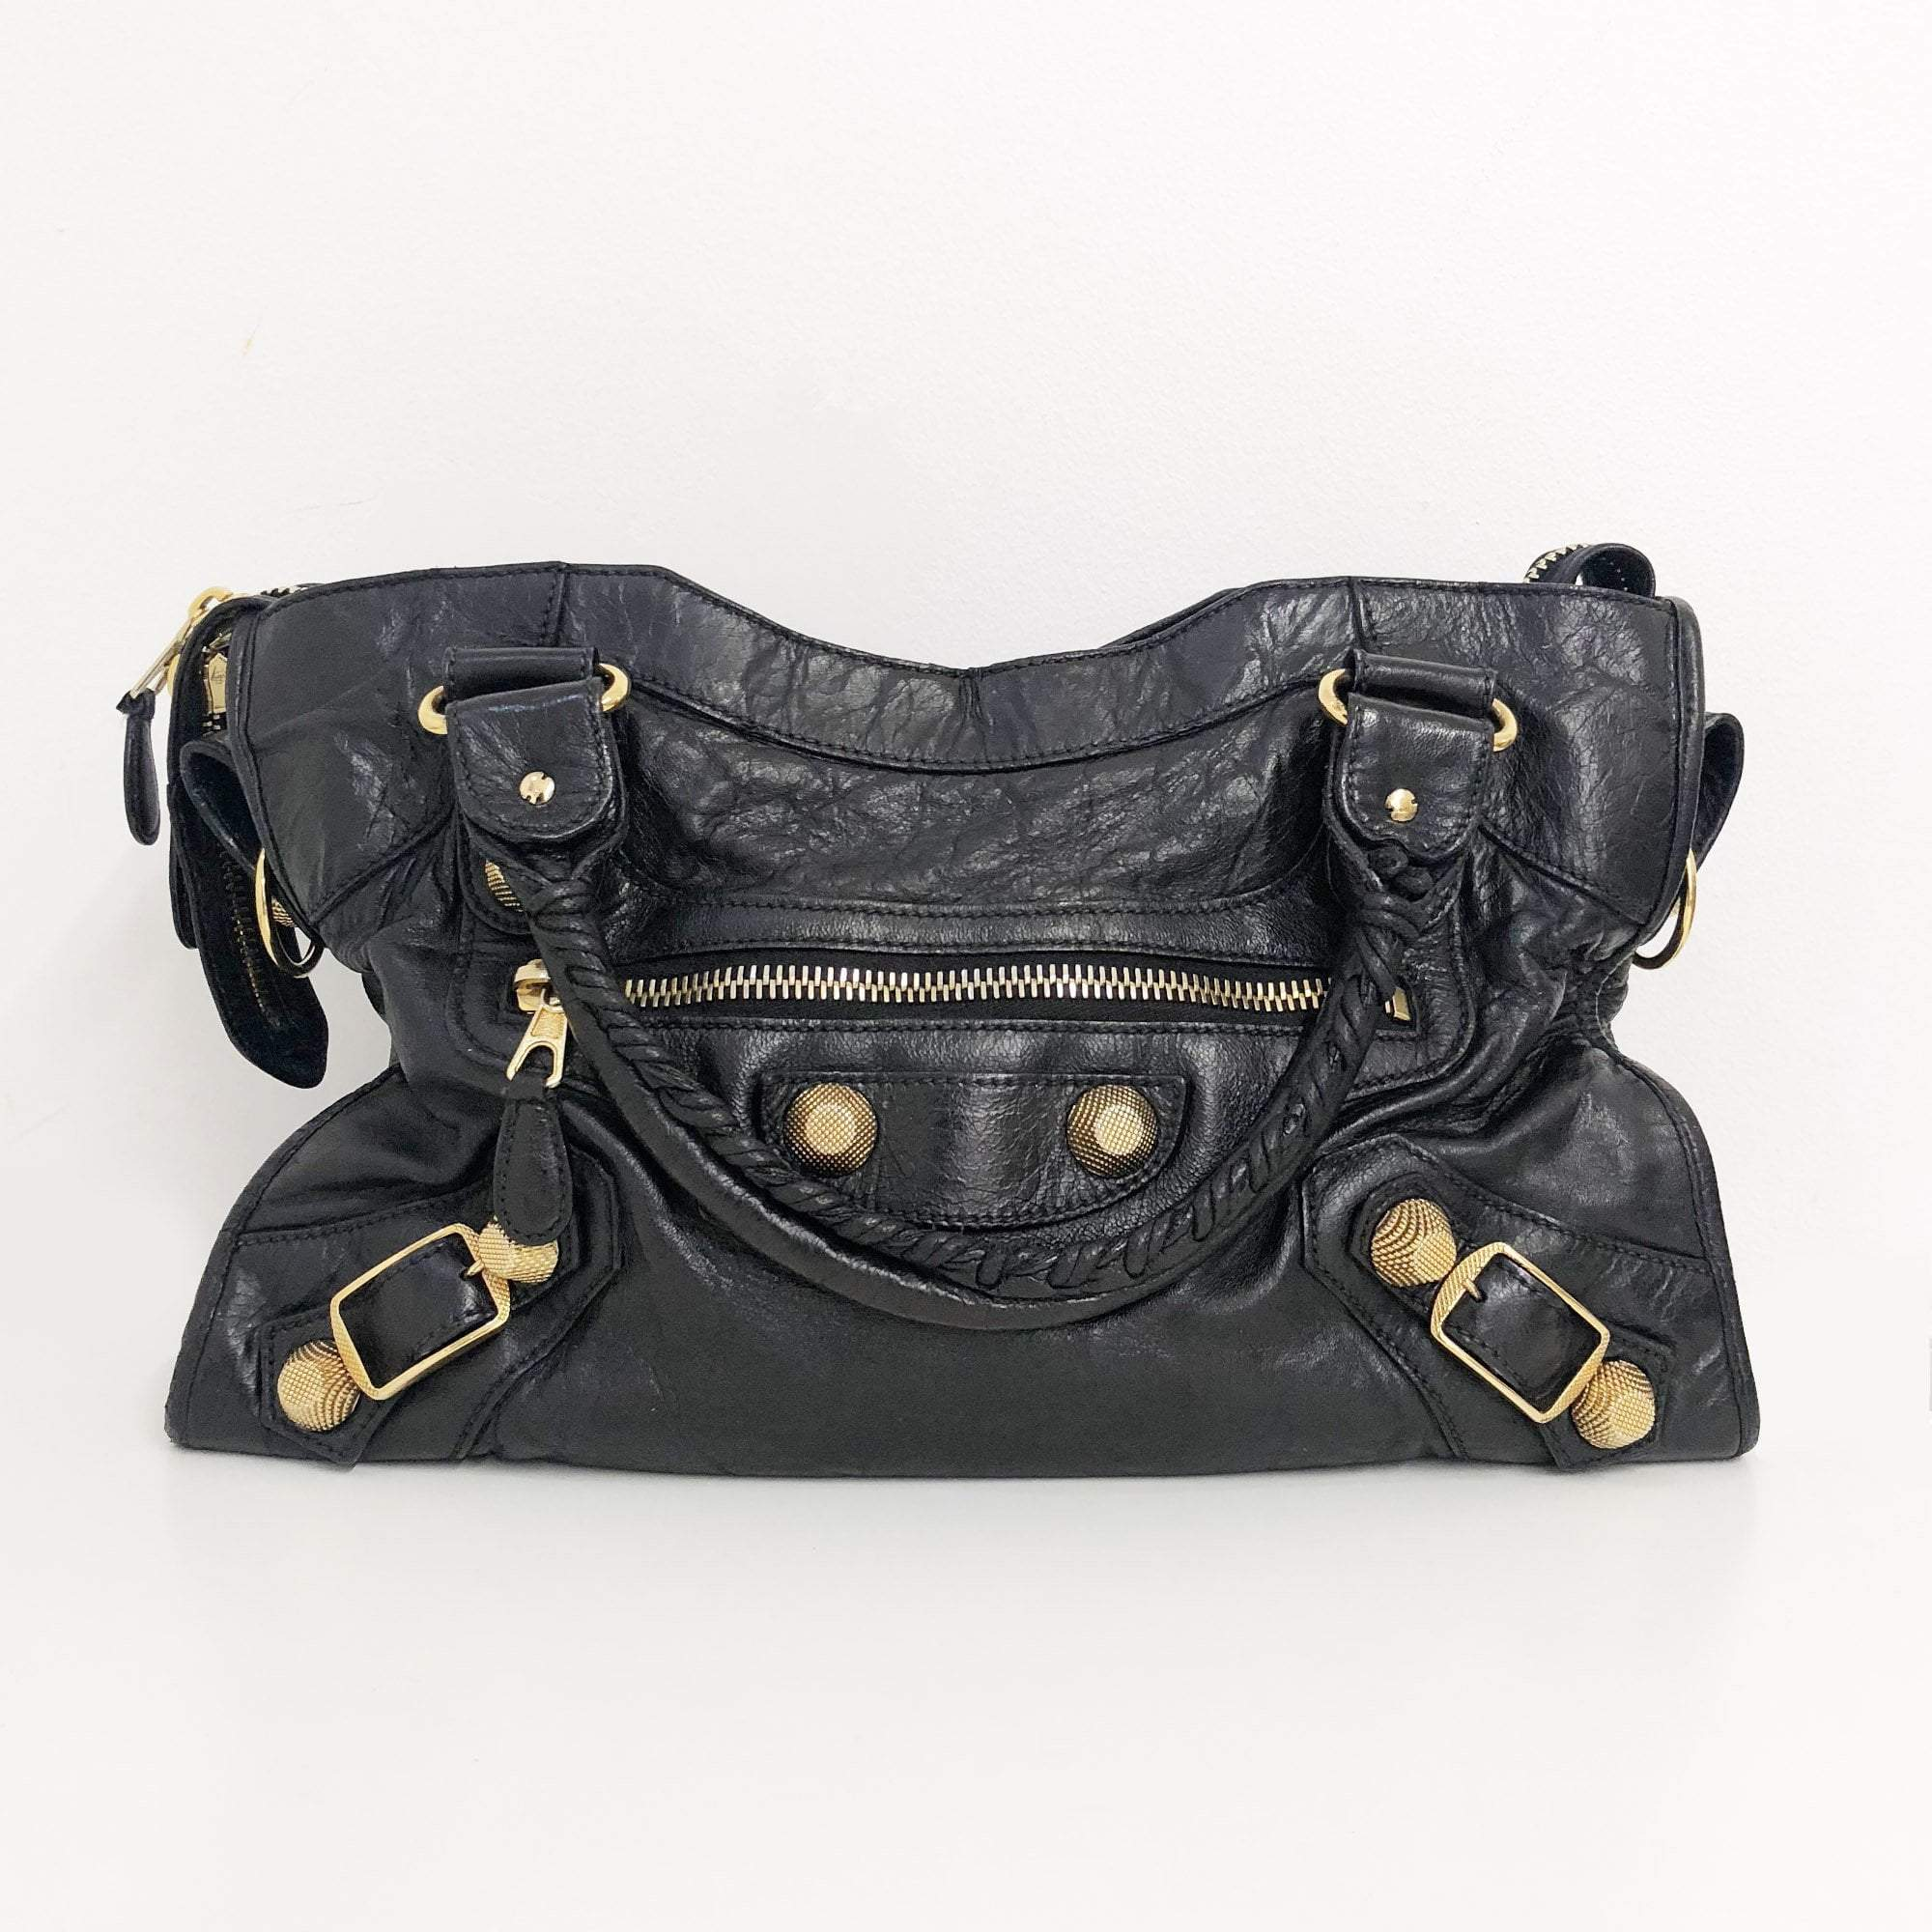 Balenciaga Black City Bag with Gold Studs